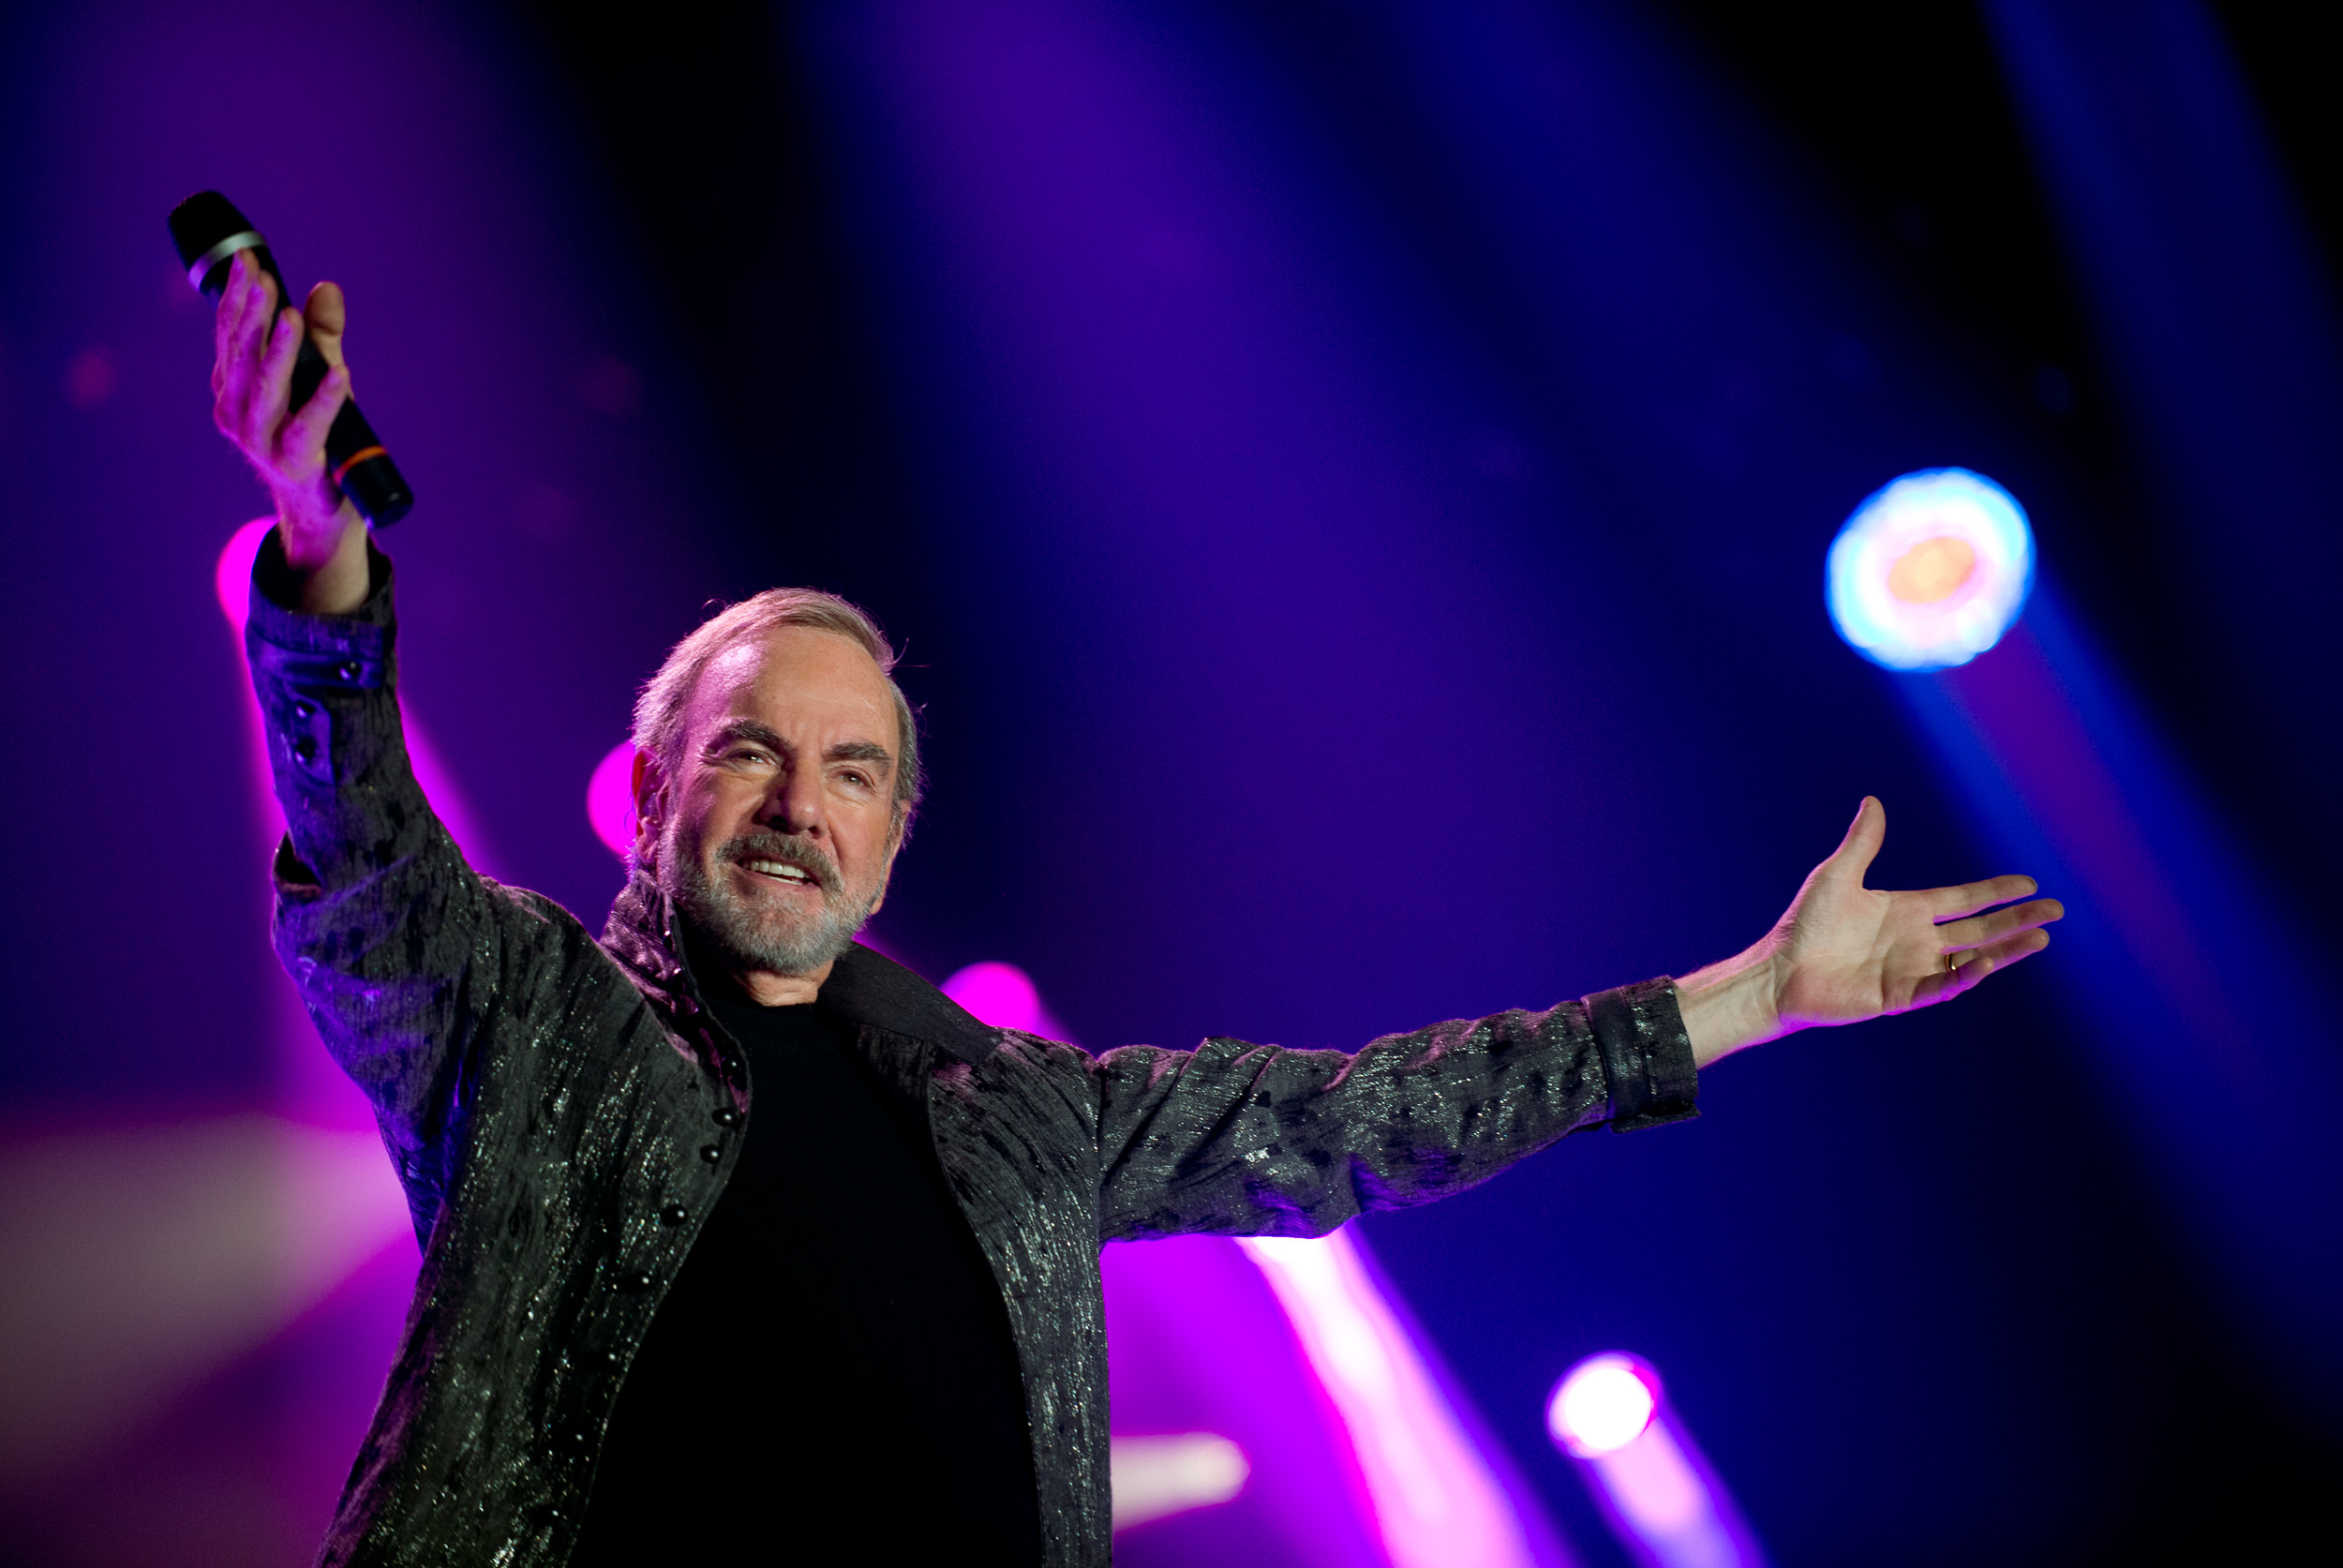 Neil Diamond S 50th Anniversary Tour Coming To Australia Neil Diamond